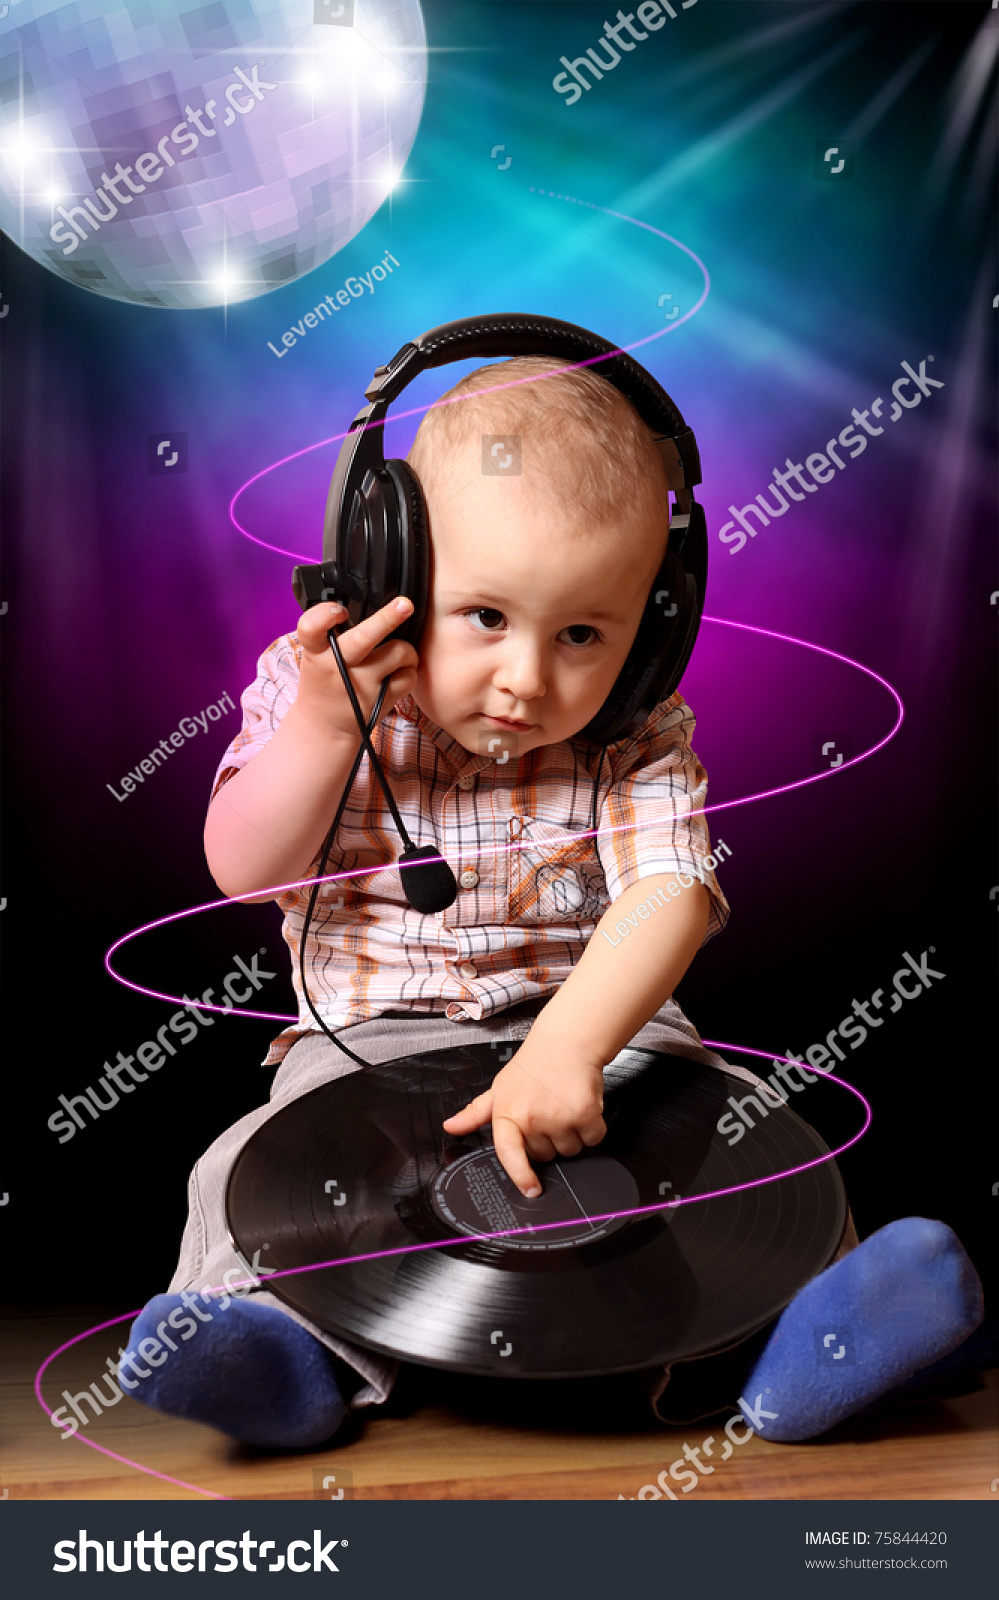 Cute Child Baby Dj Disco Stock Photo 75844420 Shutterstock